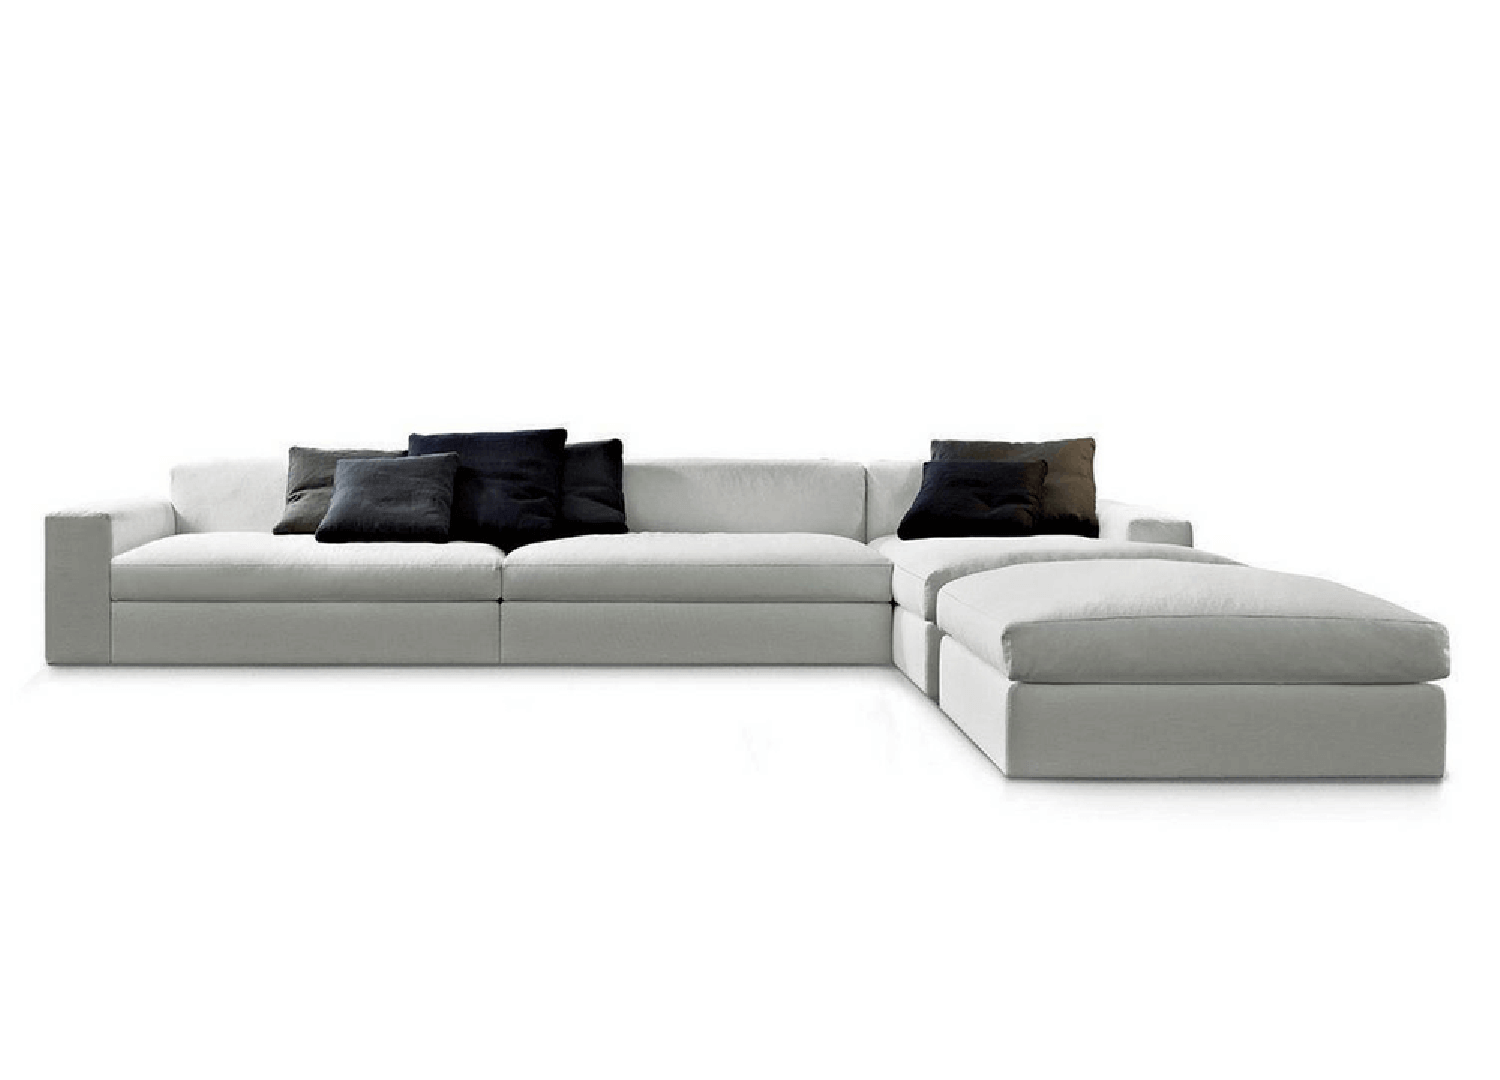 est living design directory dune sofa poliform.01